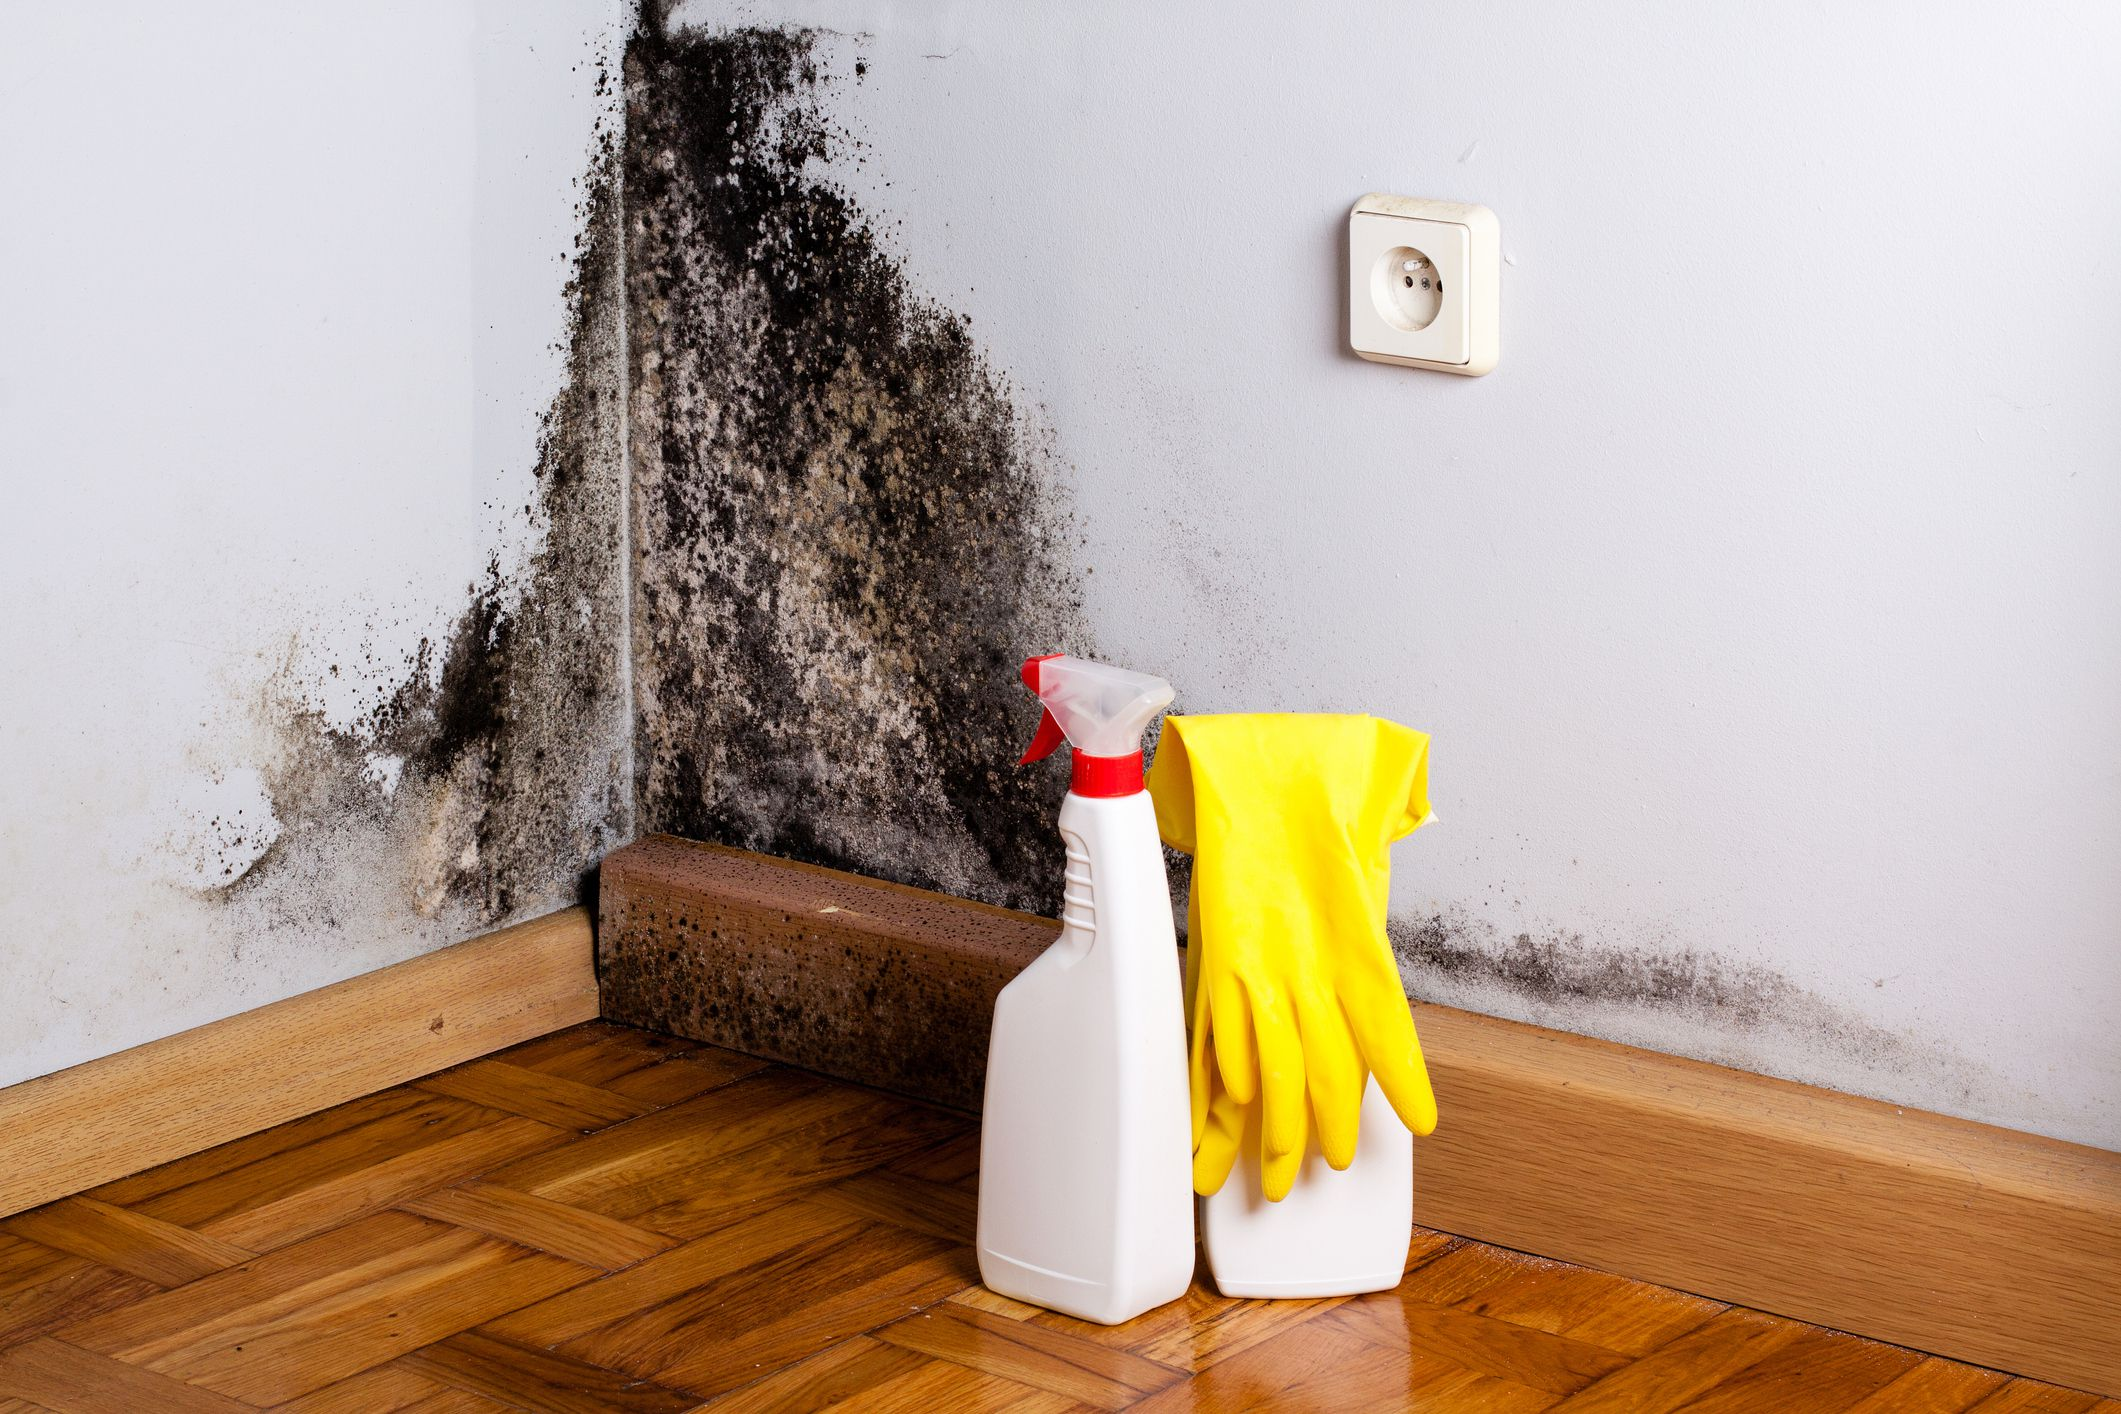 What Is The Best Product To Kill Mold